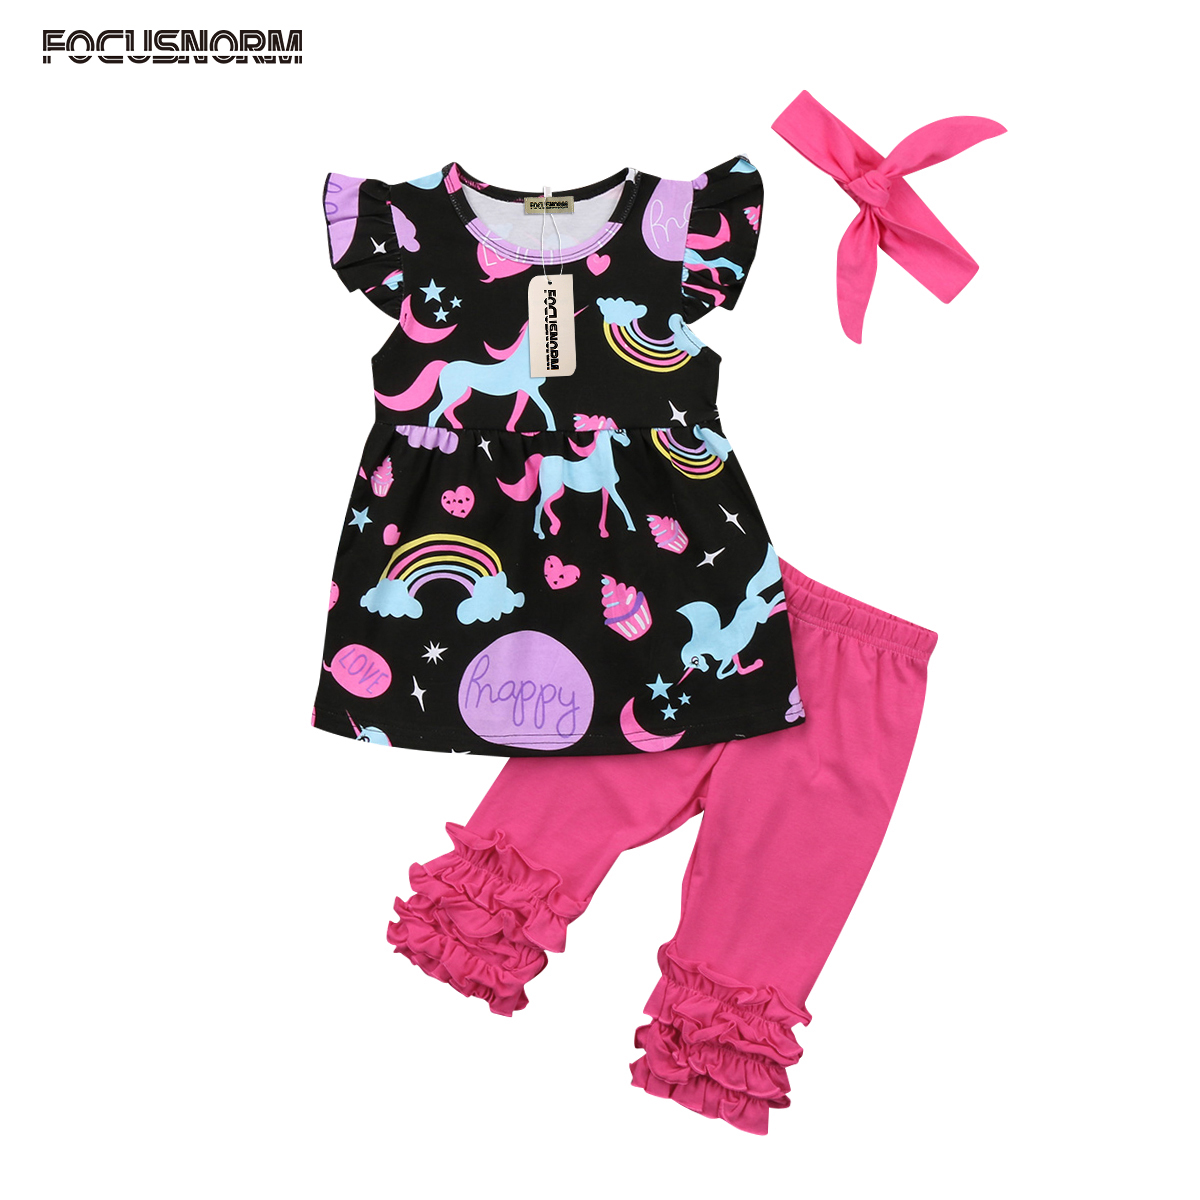 Fashion Toddler Baby Kids Girls Unicorn Flying Sleeves Tops Dress+Ruffle Pants+Headband Outfits Set Clothes 0-5T